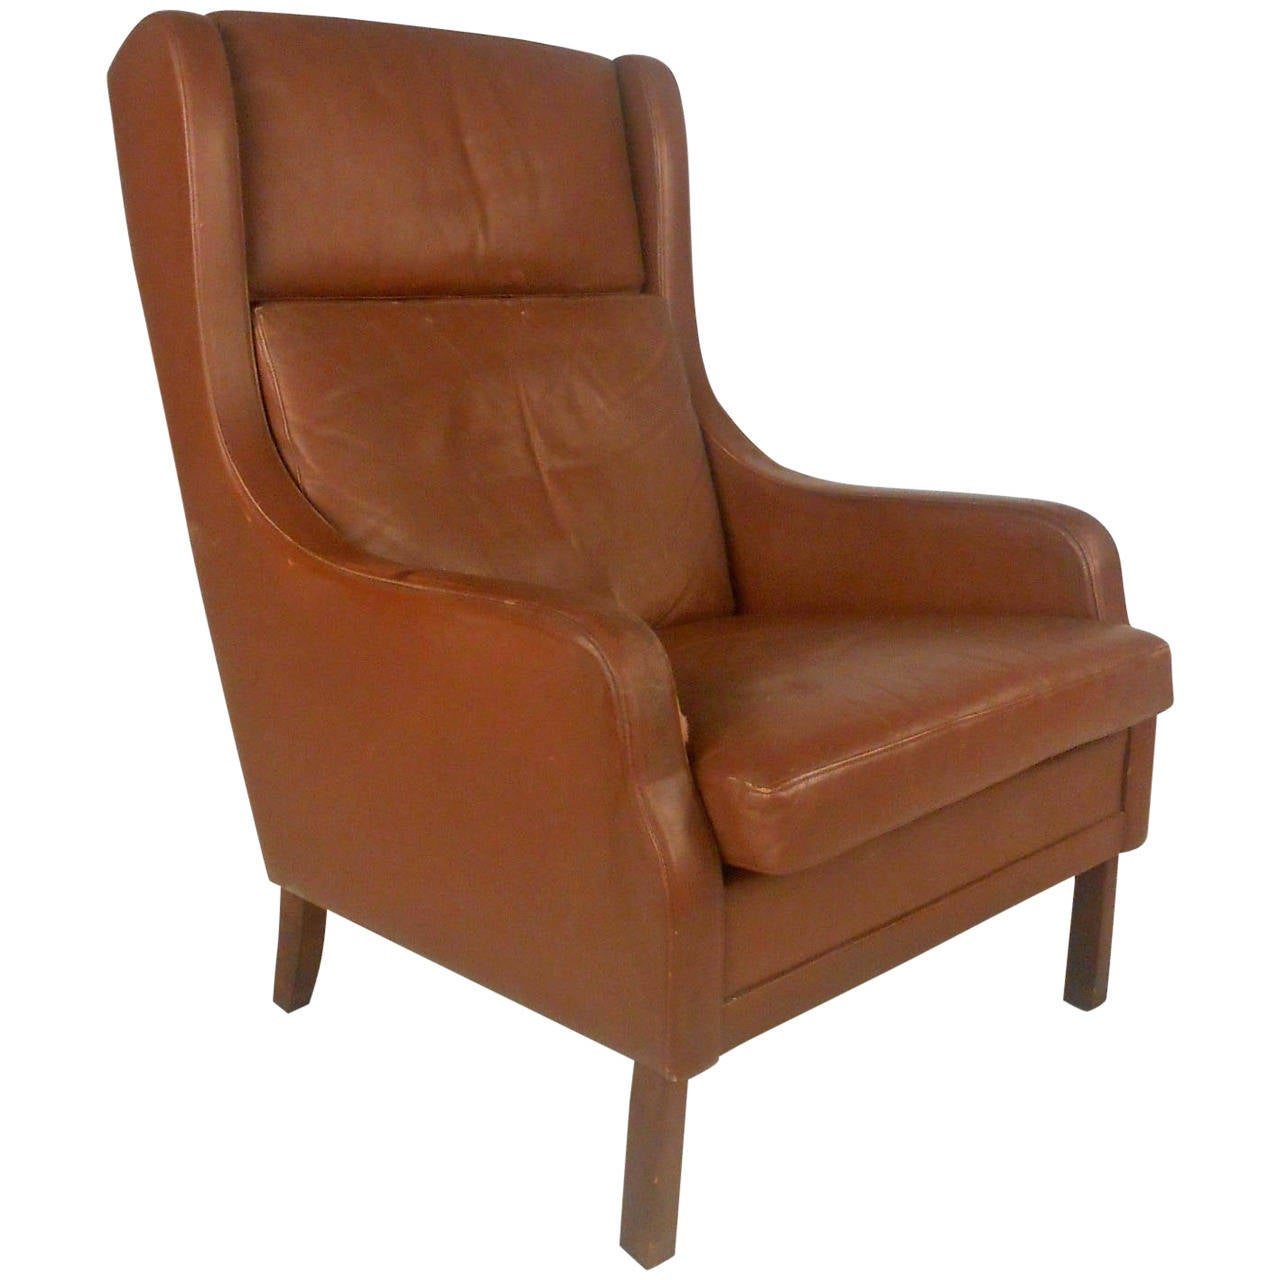 Unique Mid-Century Modern Vintage Leather Danish Lounge Chair